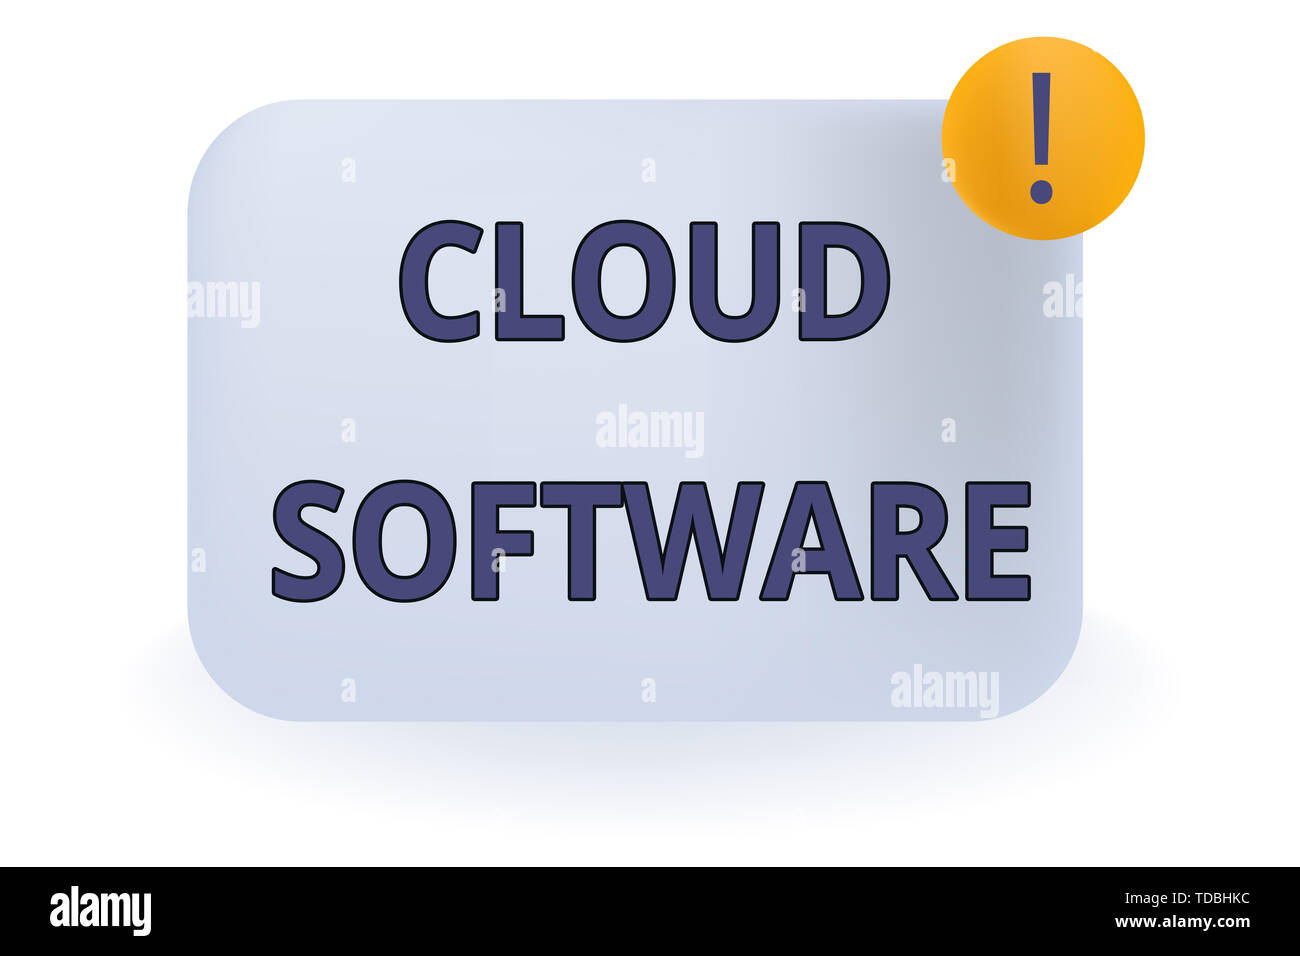 Conceptual hand writing showing Cloud Software. Concept meaning Programs used in Storing Accessing data over the internet Empty Rectangular Shape Text - Stock Image